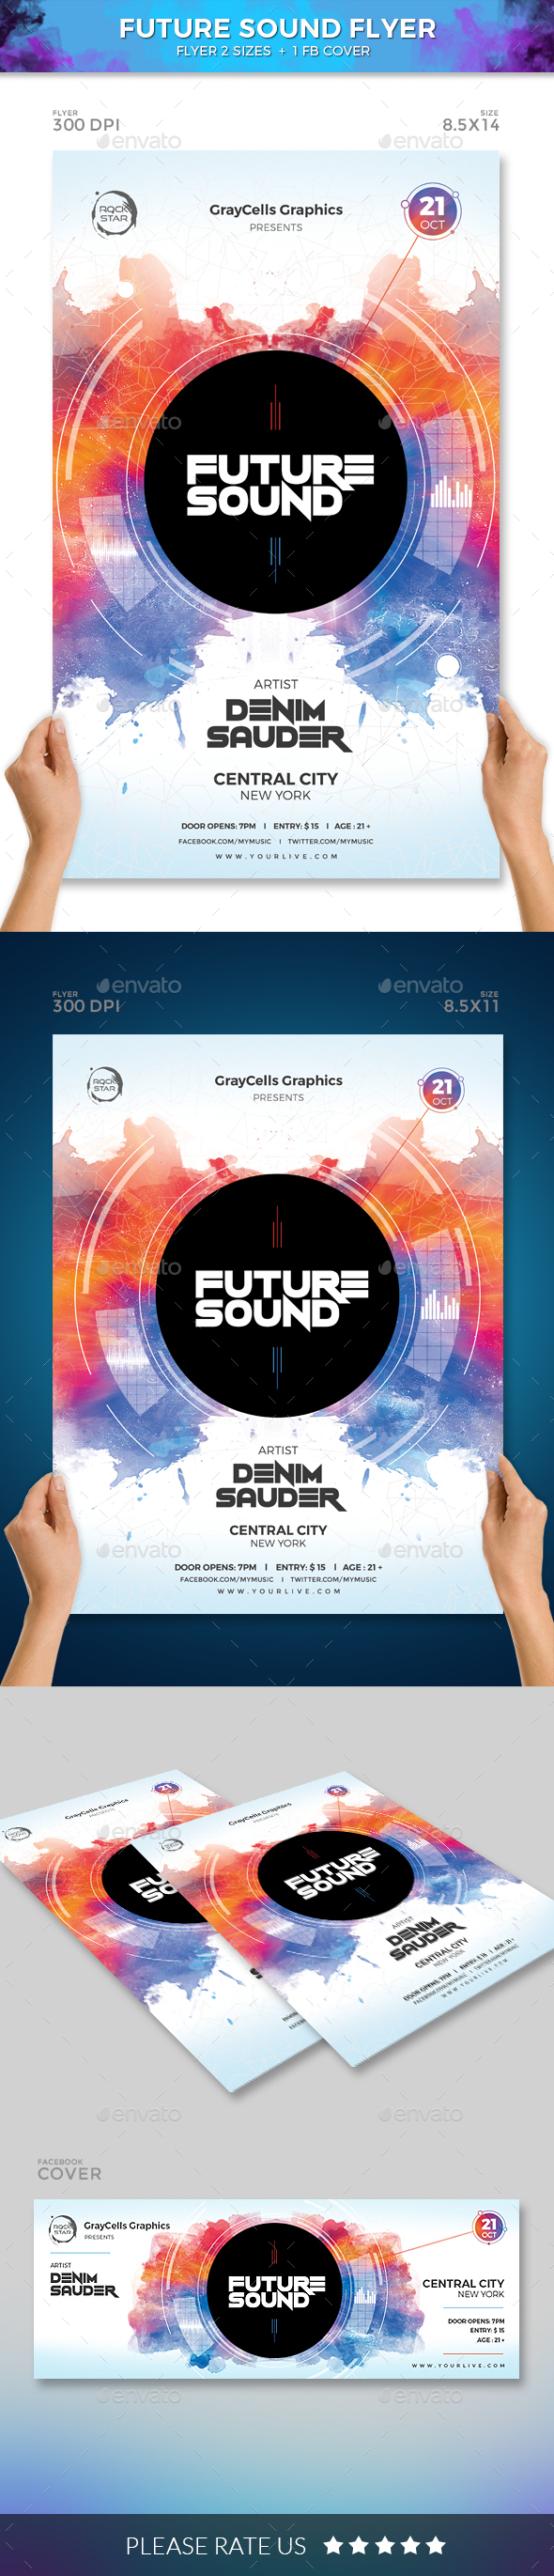 GraphicRiver FUTURE SOUND FLYER 20701083